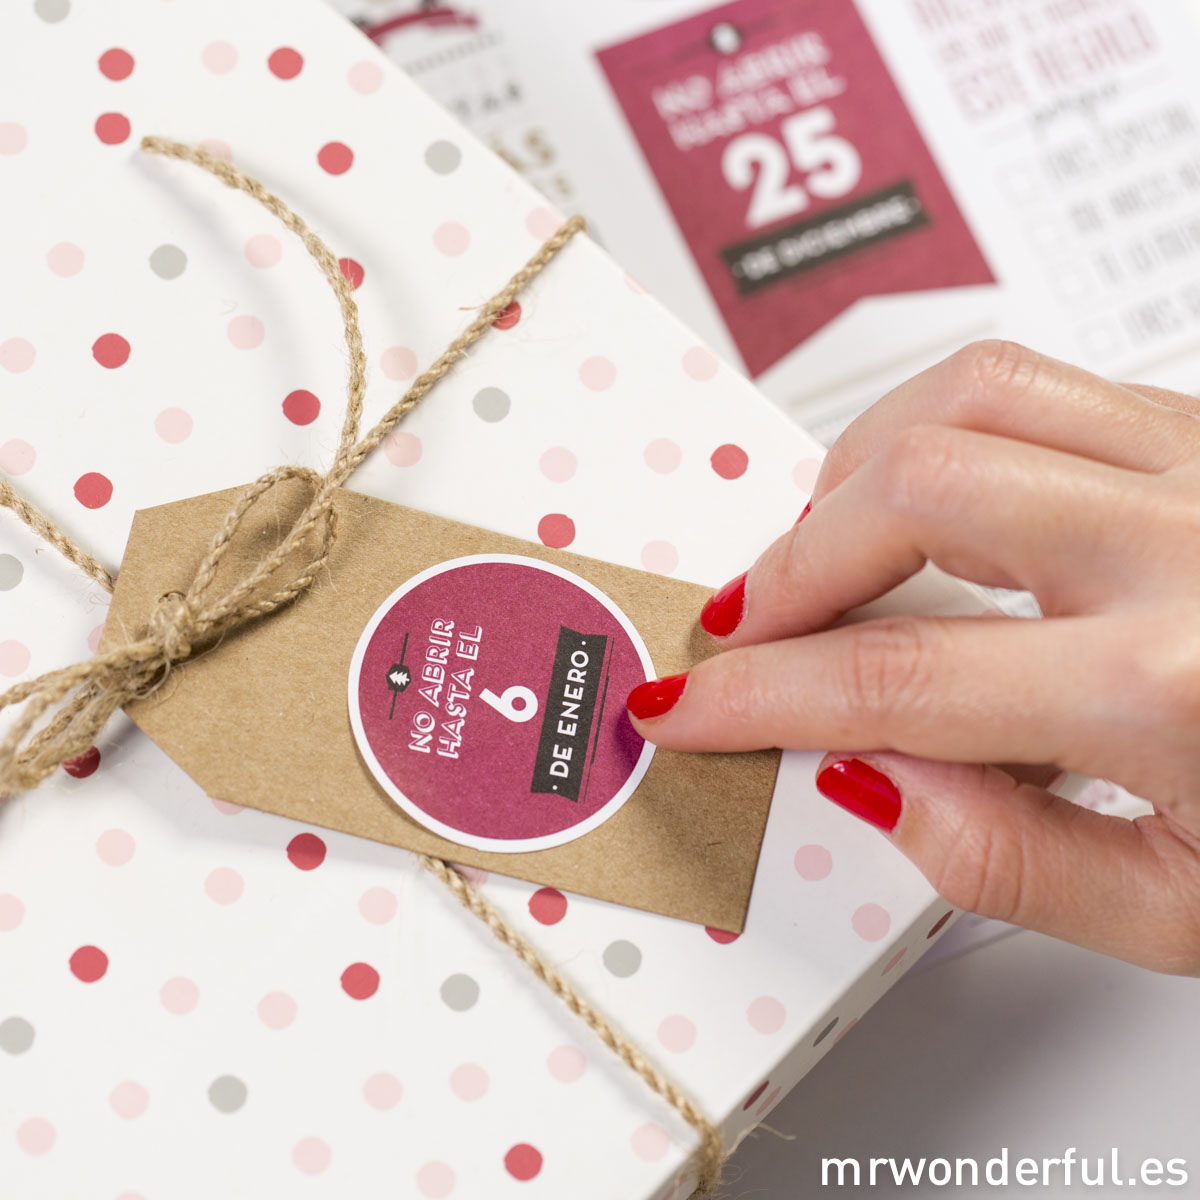 Mr.Wonderful: pegatinas navideñas